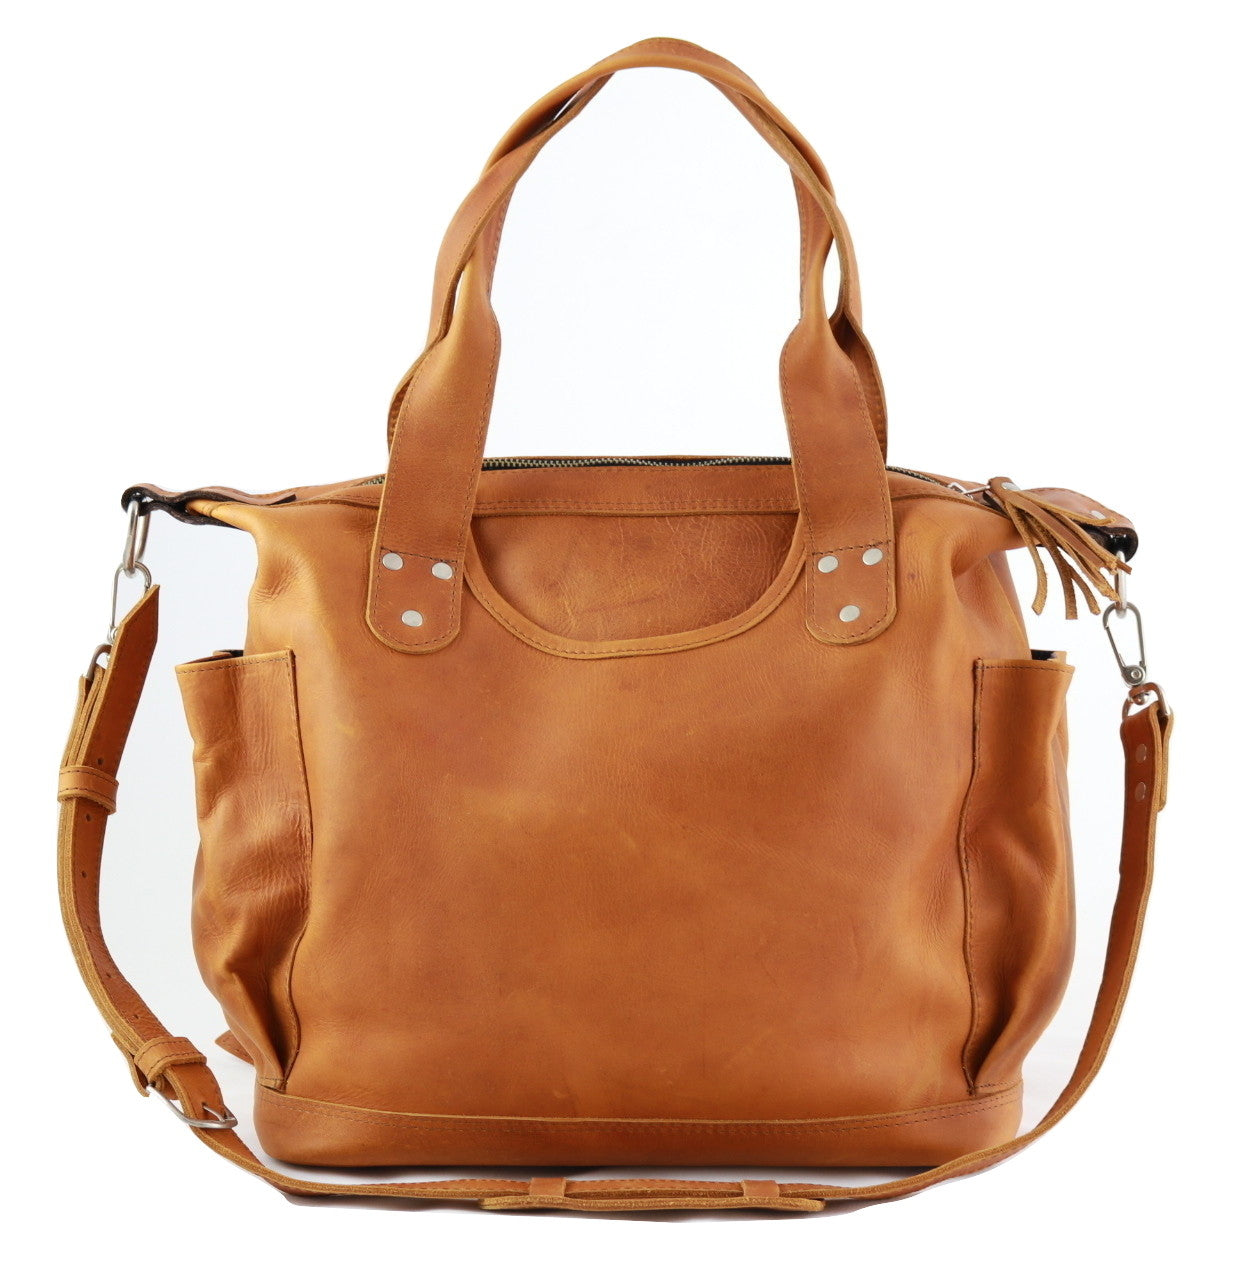 Tenango CDB - Convertible Day Bag all Tan Leather